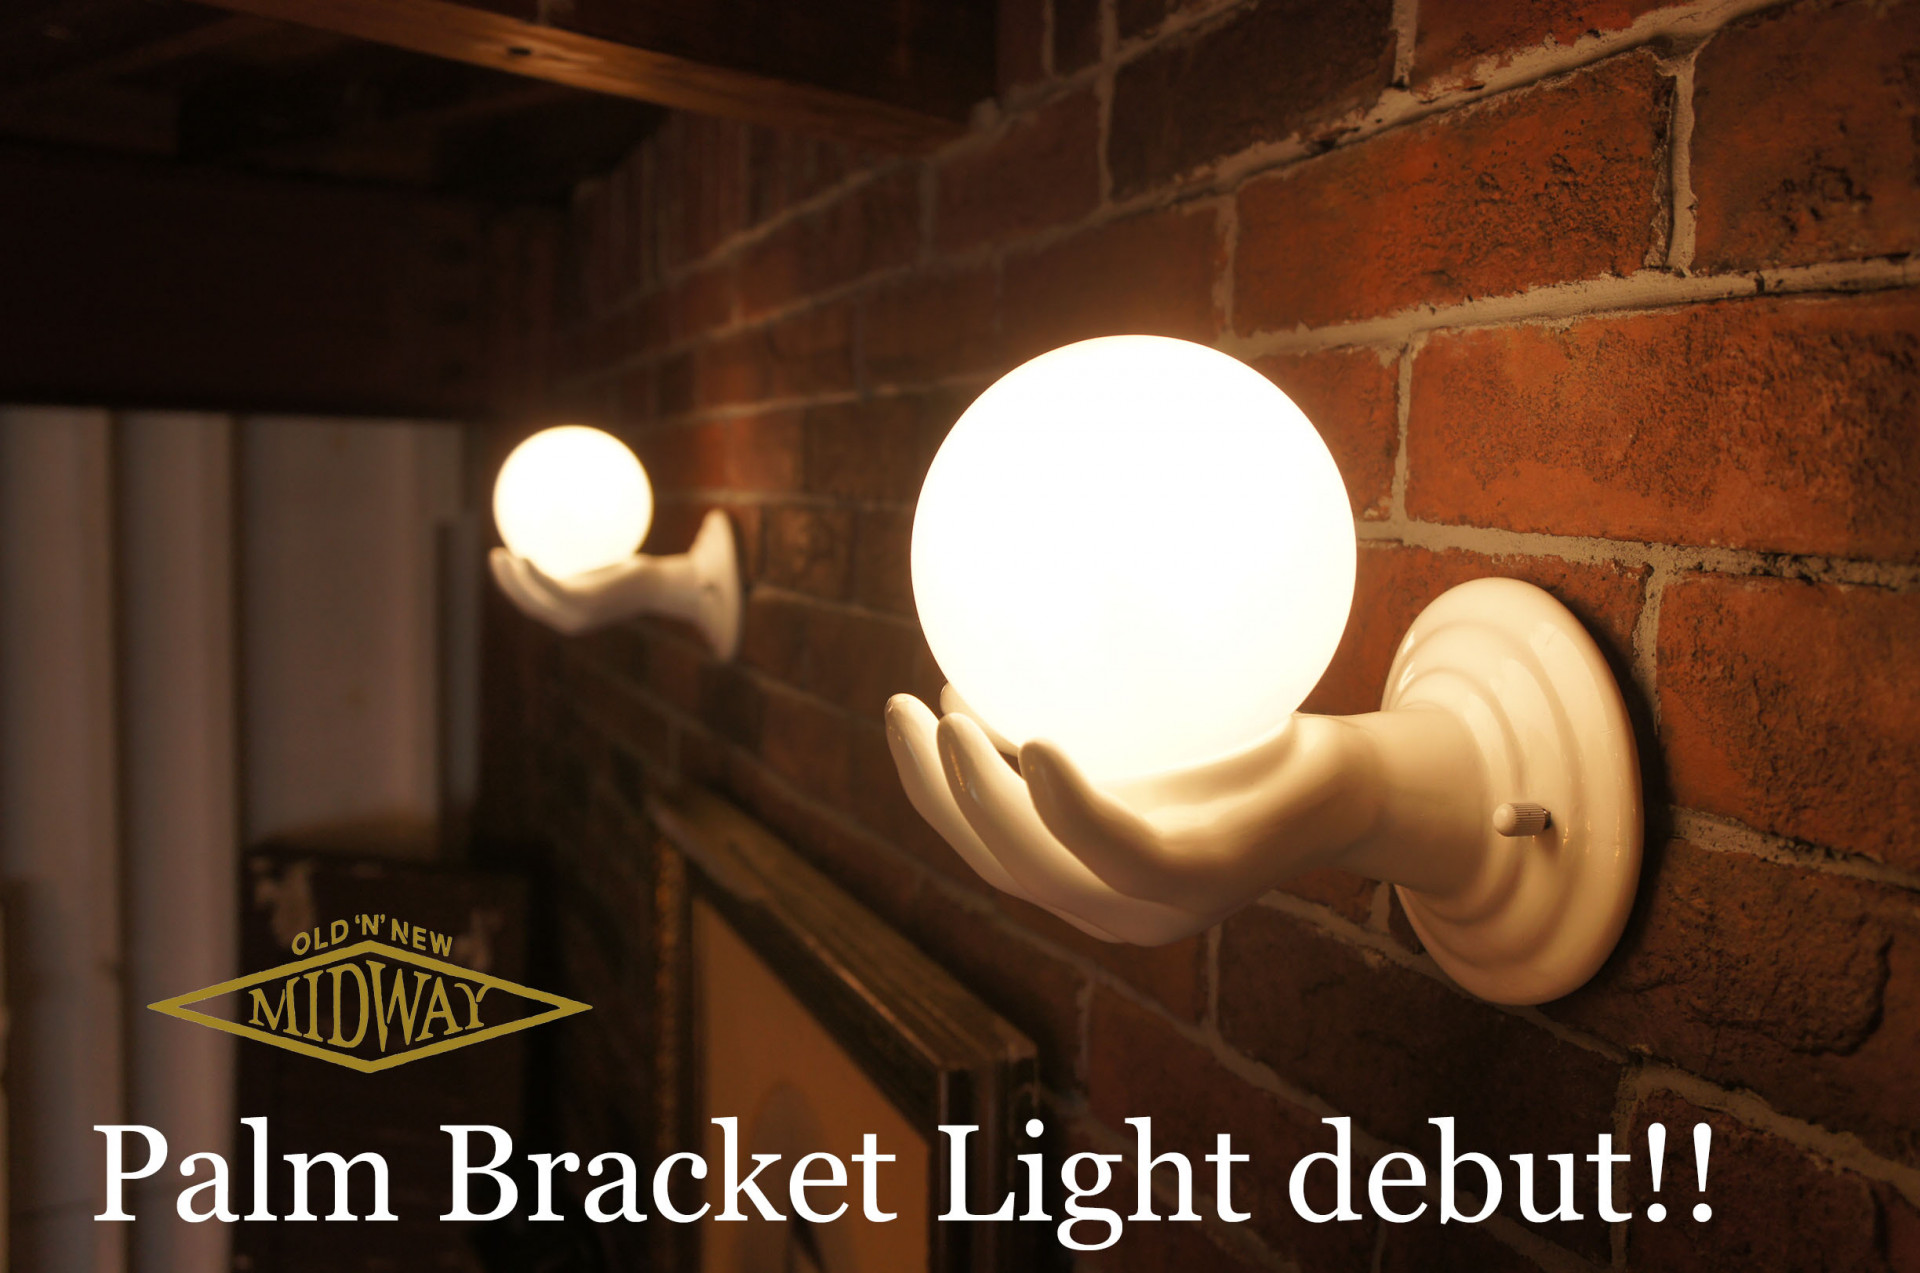 Palm Bracket Light debut!!